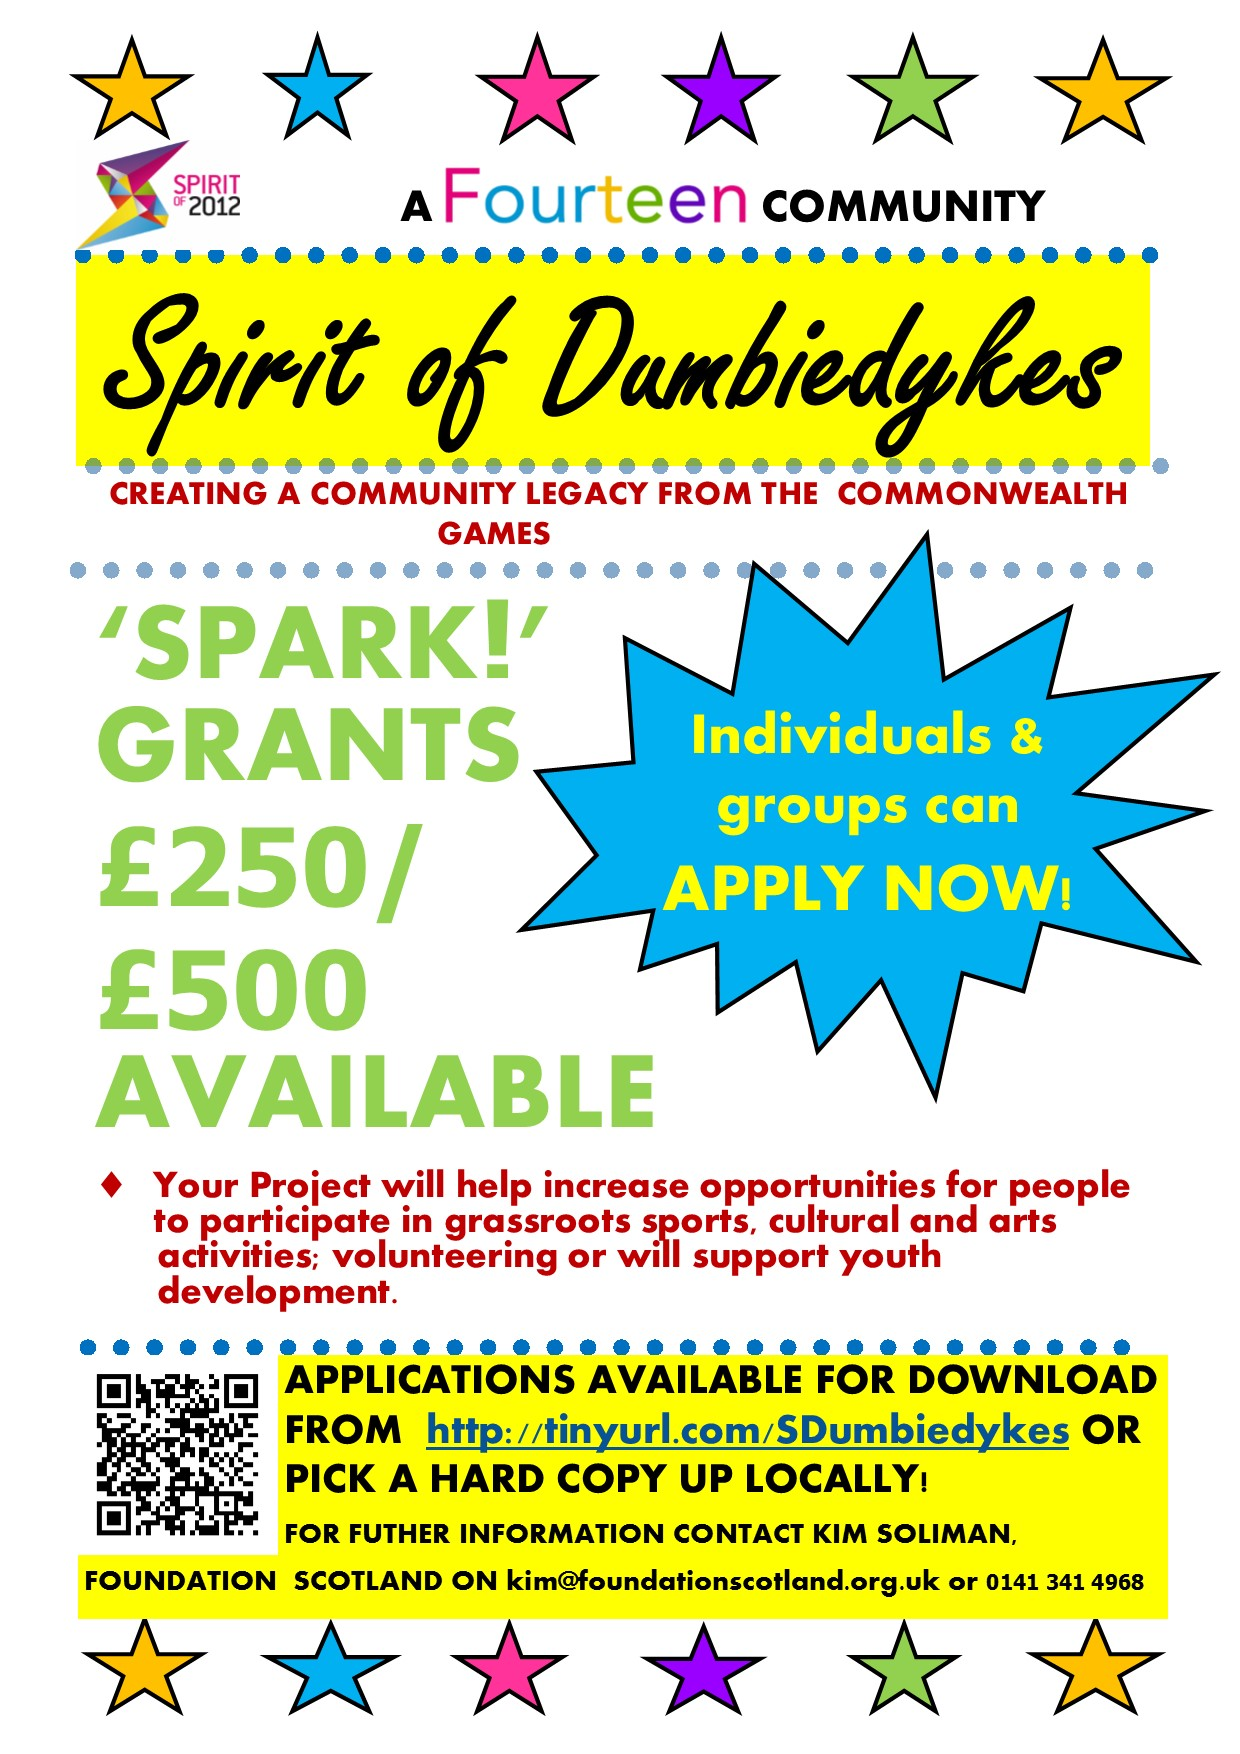 Spark Grants Dumbiedykes